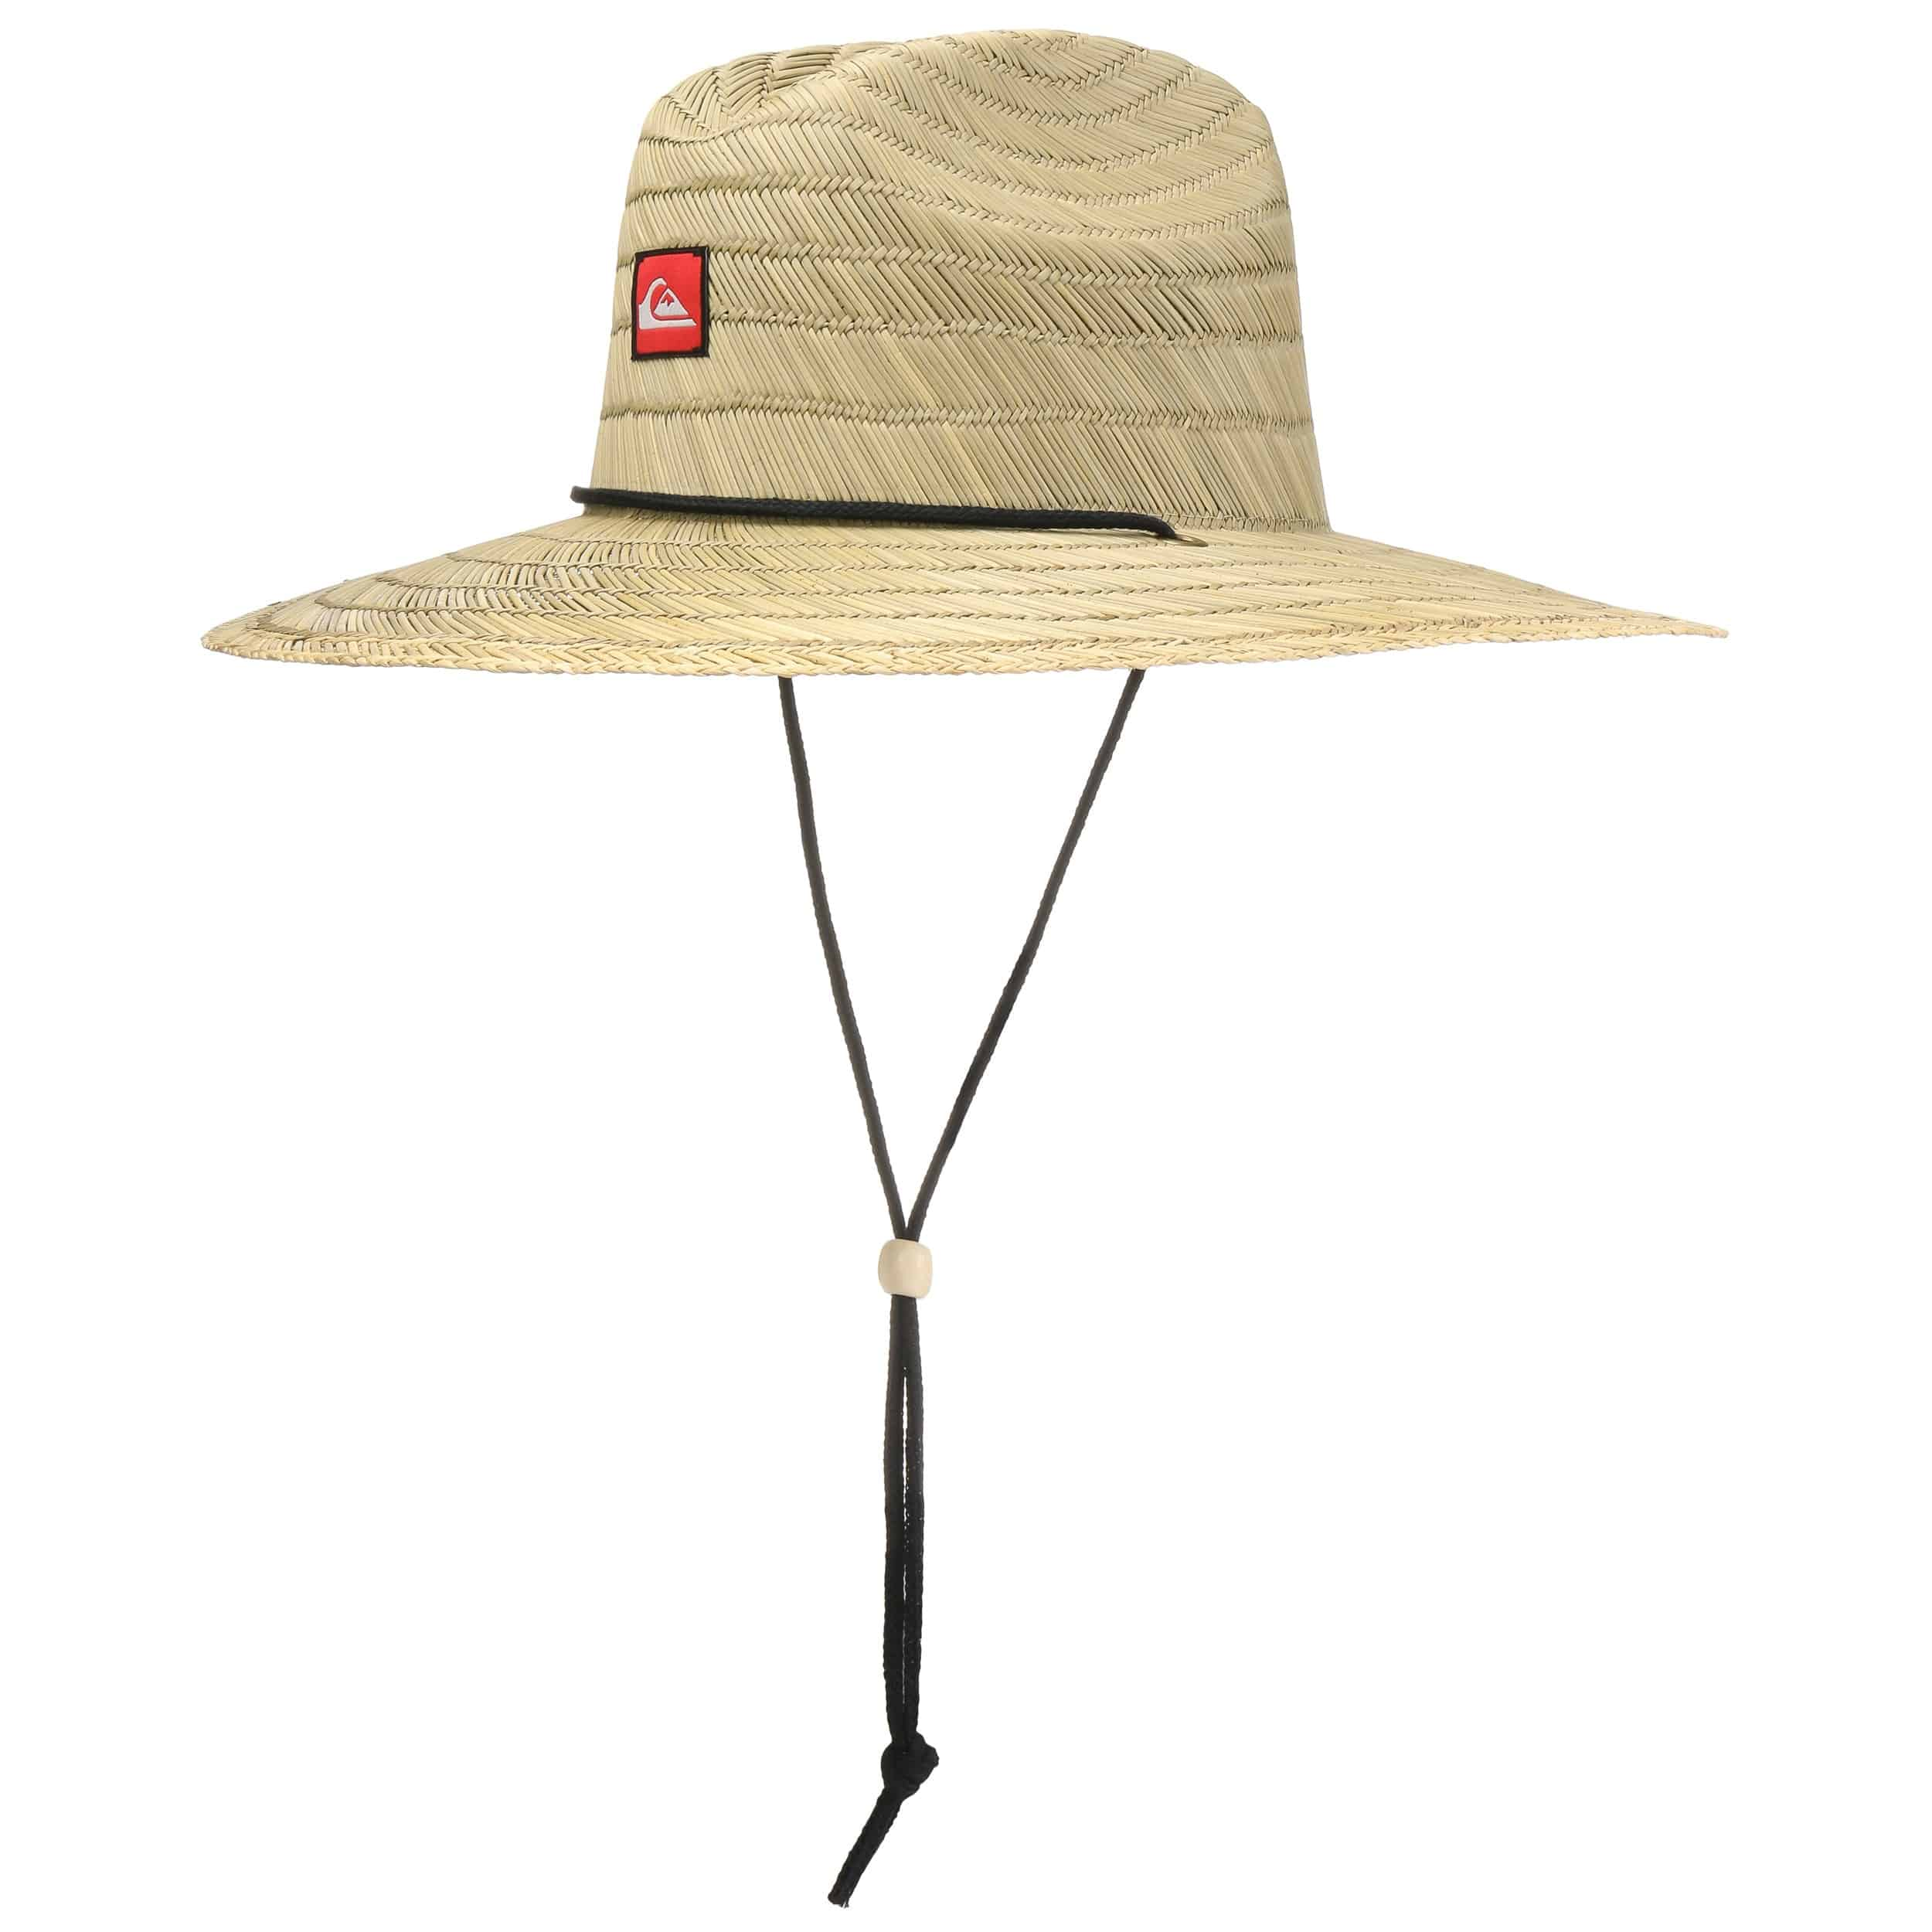 7acb1f02c09 Lifeguard straw hat quiksilver hats caps jpg 2500x2500 Quicksilver straw hat